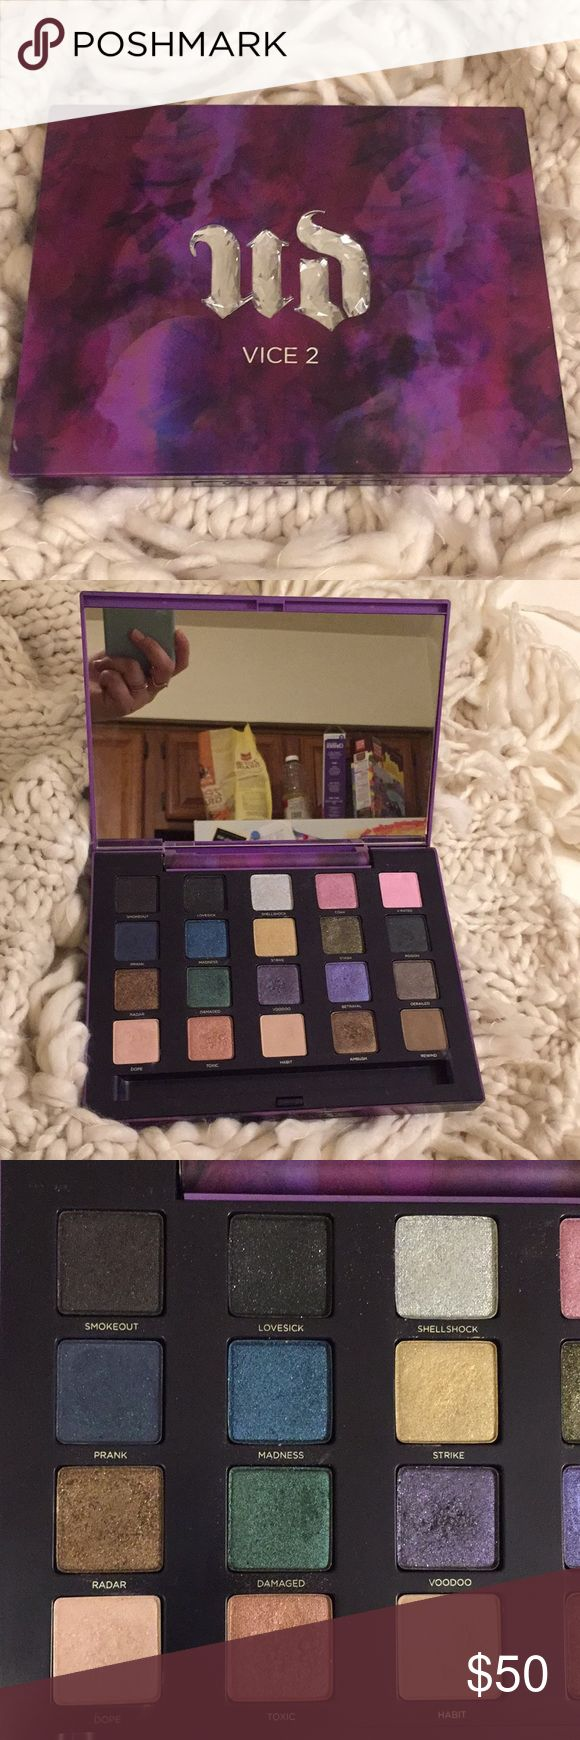 Urban Decay Vice 2 palette Urban Decay Vice 2 palette. Used twice. The pictures do not do these colors justice. Missing brush, other than that, like new condition. Urban Decay Makeup Eyeshadow